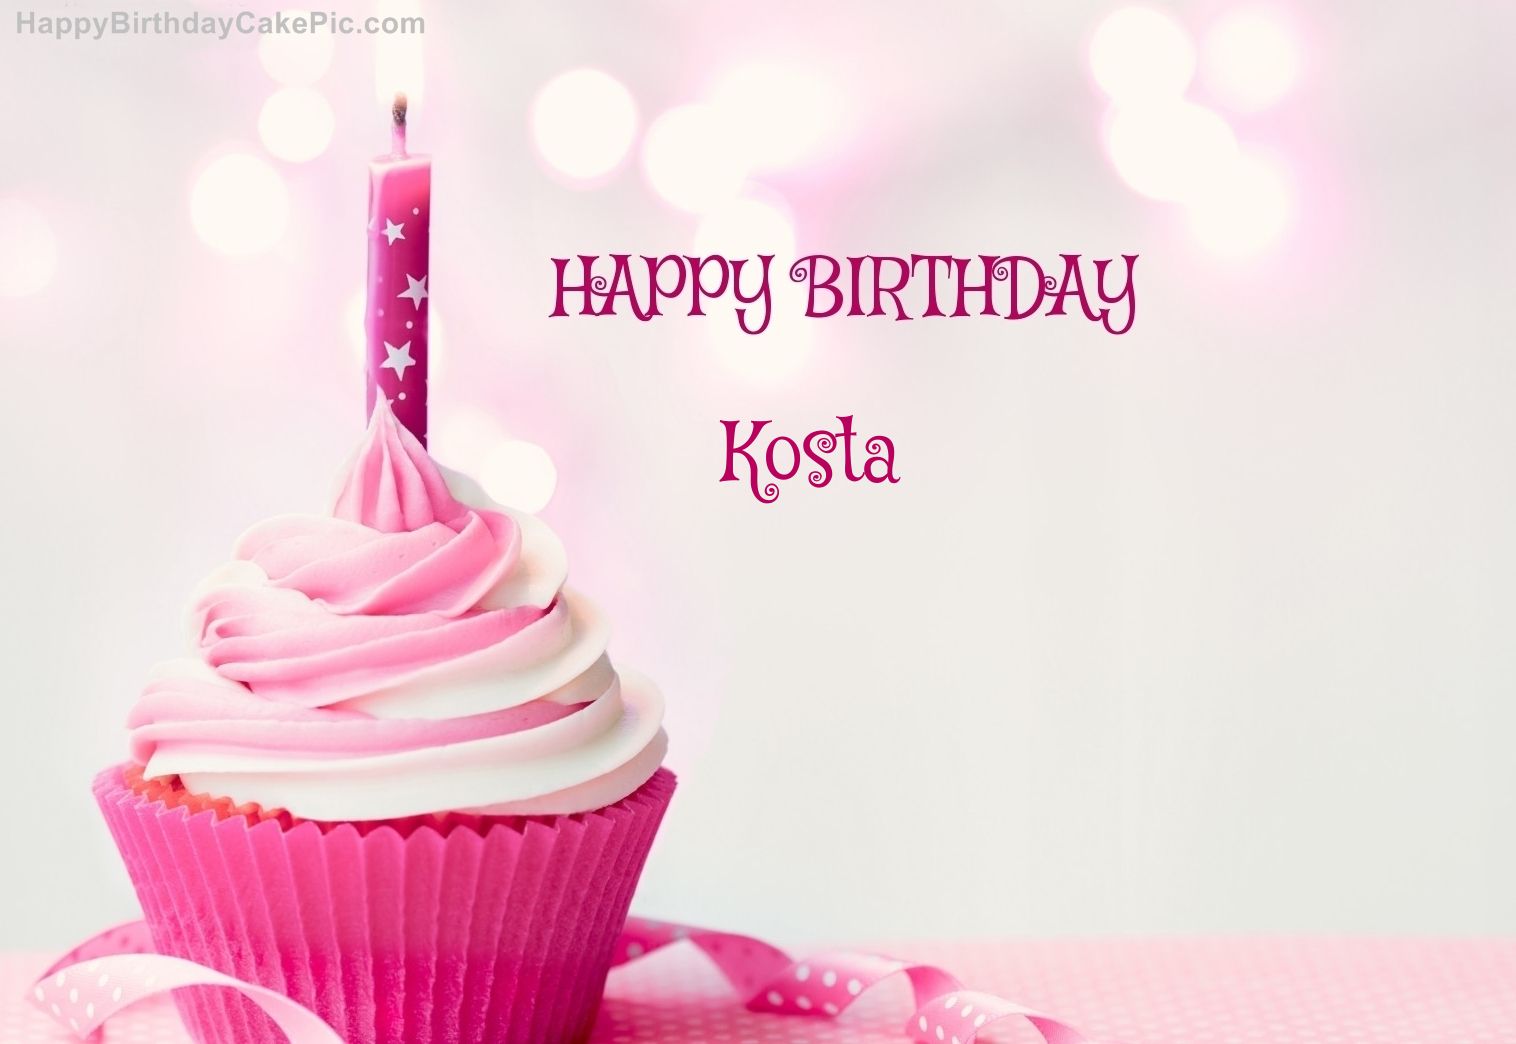 happy-birthday-cupcake-candle-pink-picture-for-Kosta.jpg